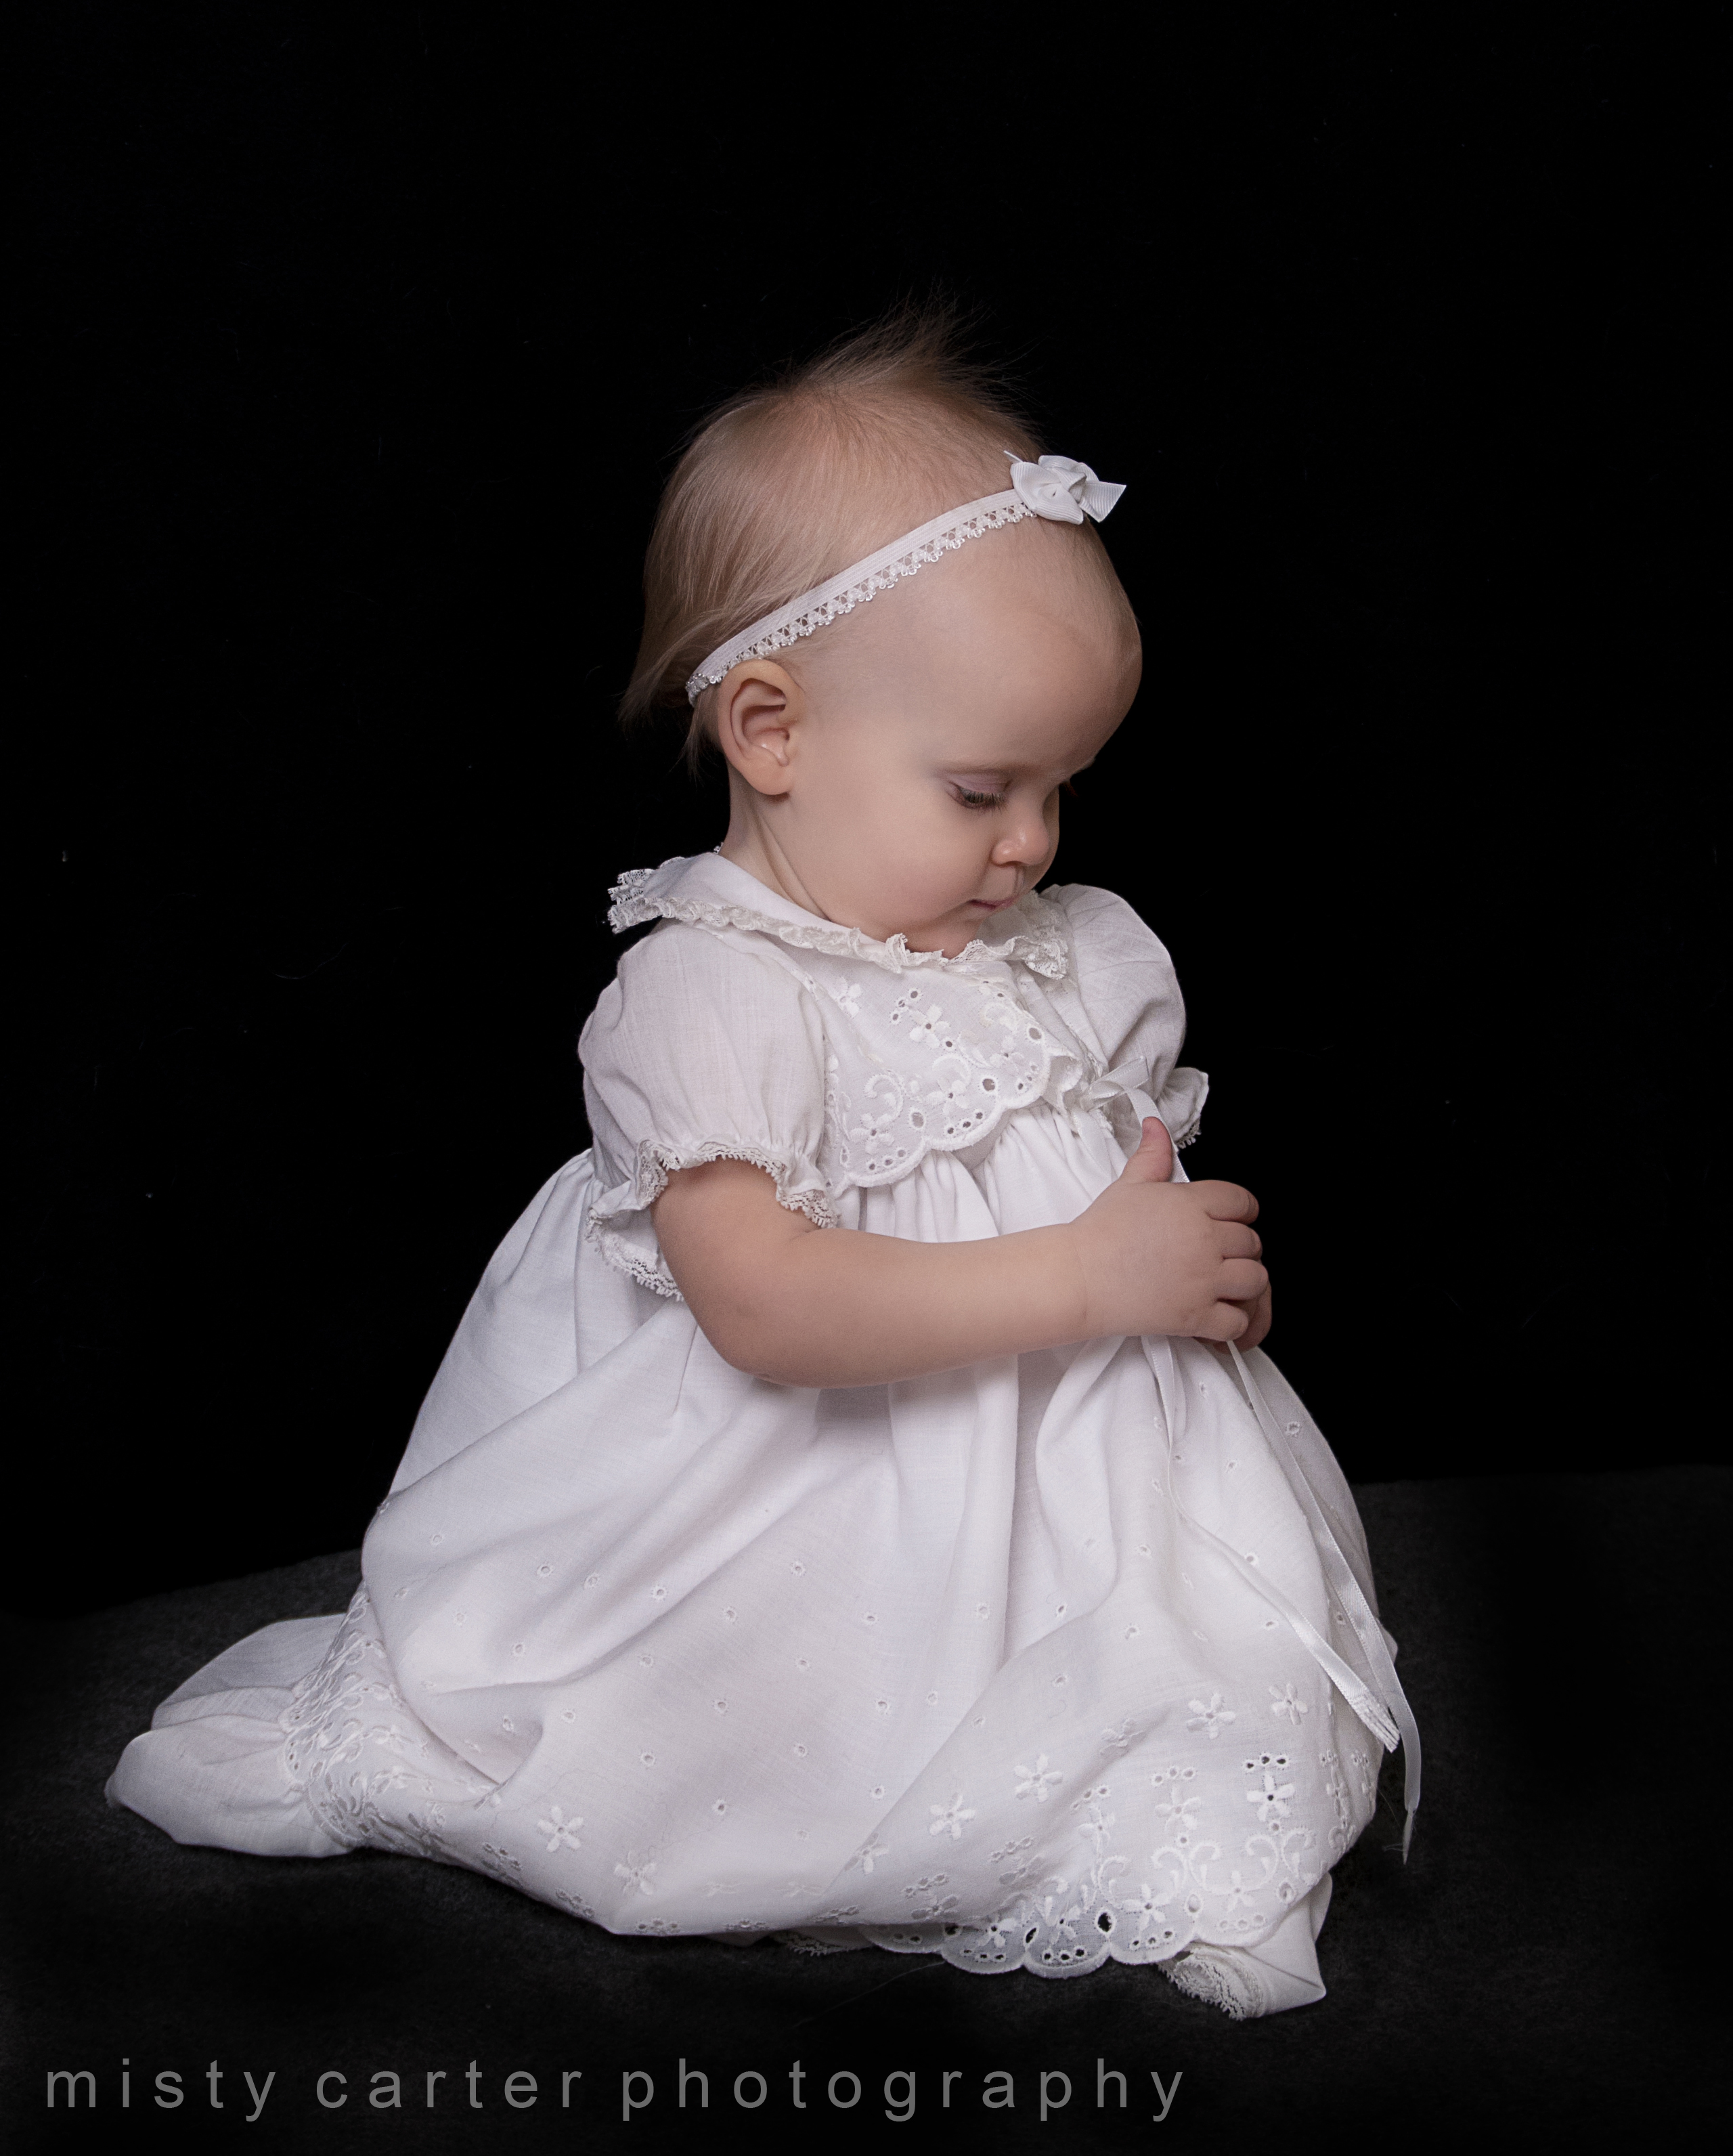 Baby girl in Christening baptism gown on black background praying